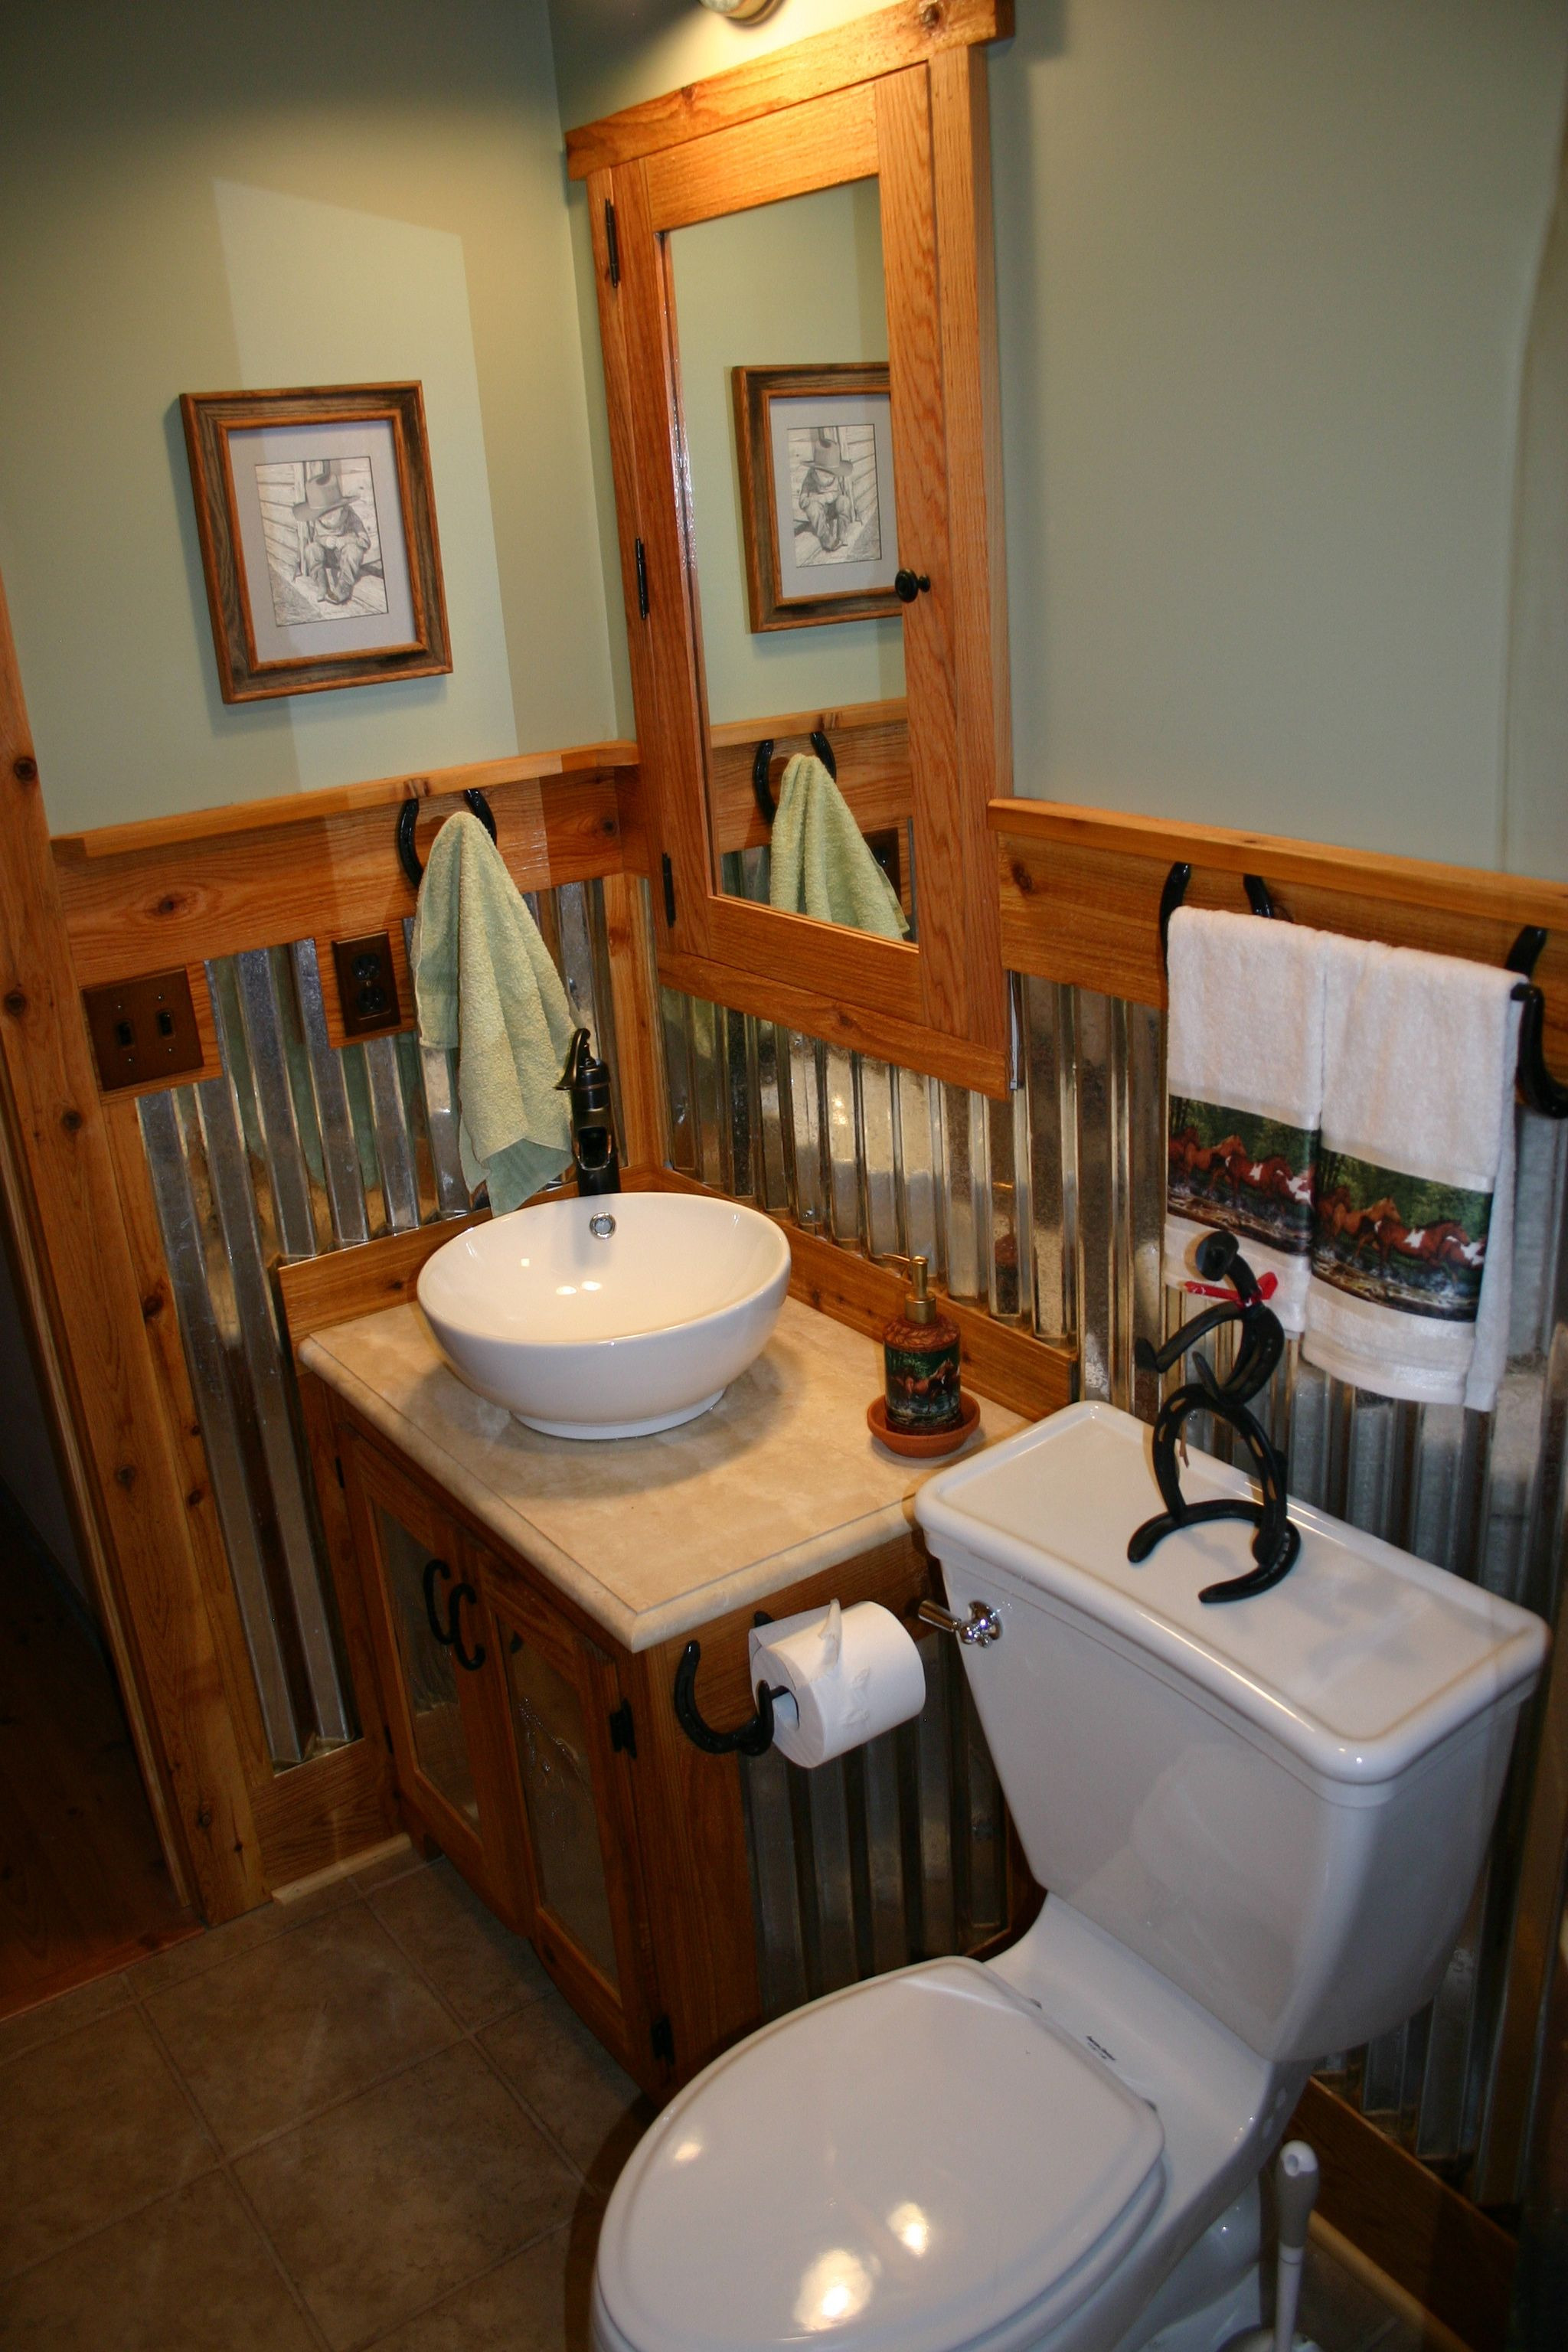 Horse Bathroom Decor Awesome Horse themed Bathroom with Images